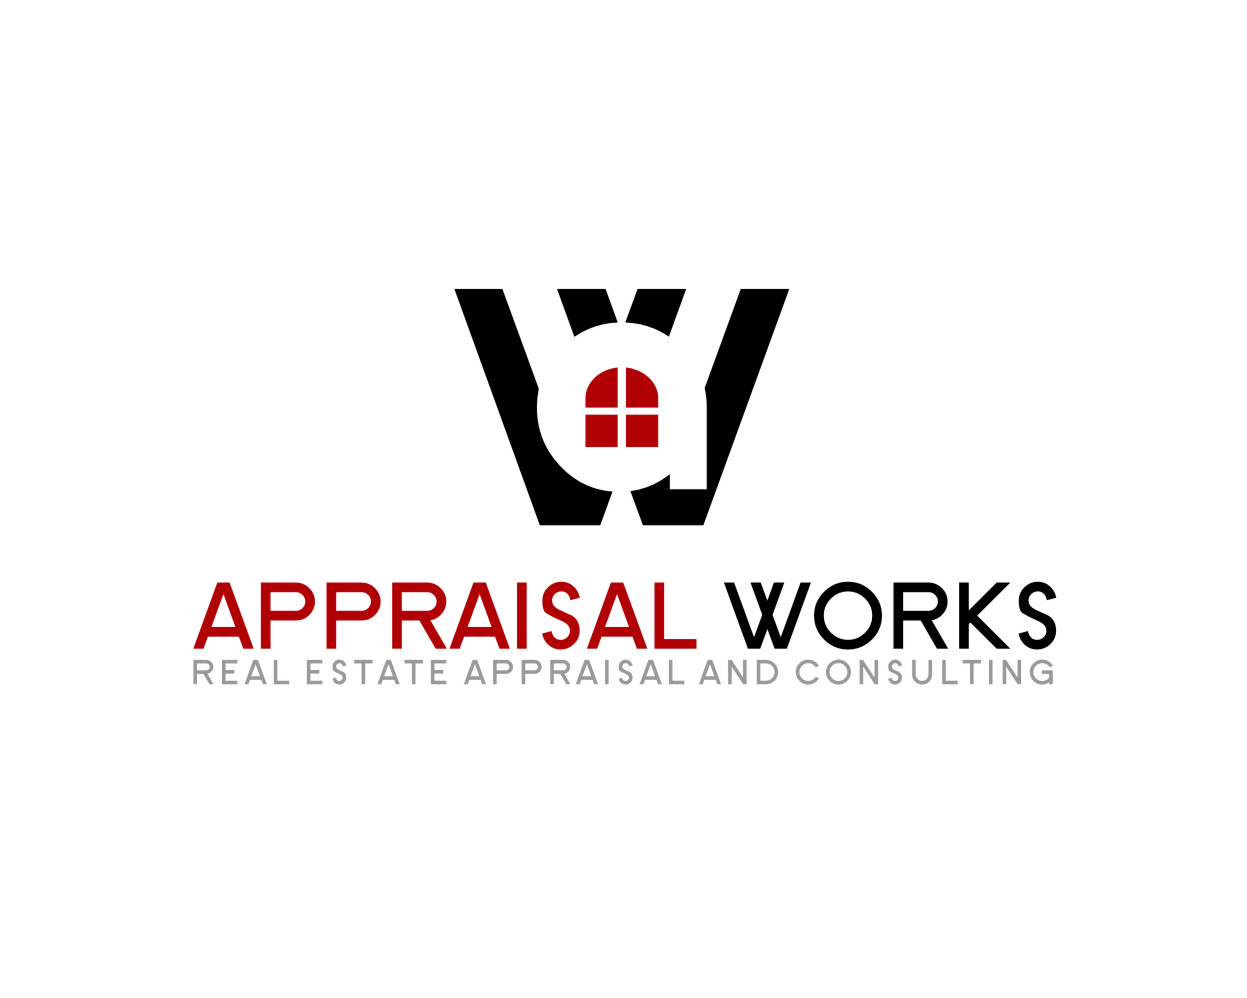 Logo Design by Ngepet_art - Entry No. 149 in the Logo Design Contest Appraisal Works Logo Design.